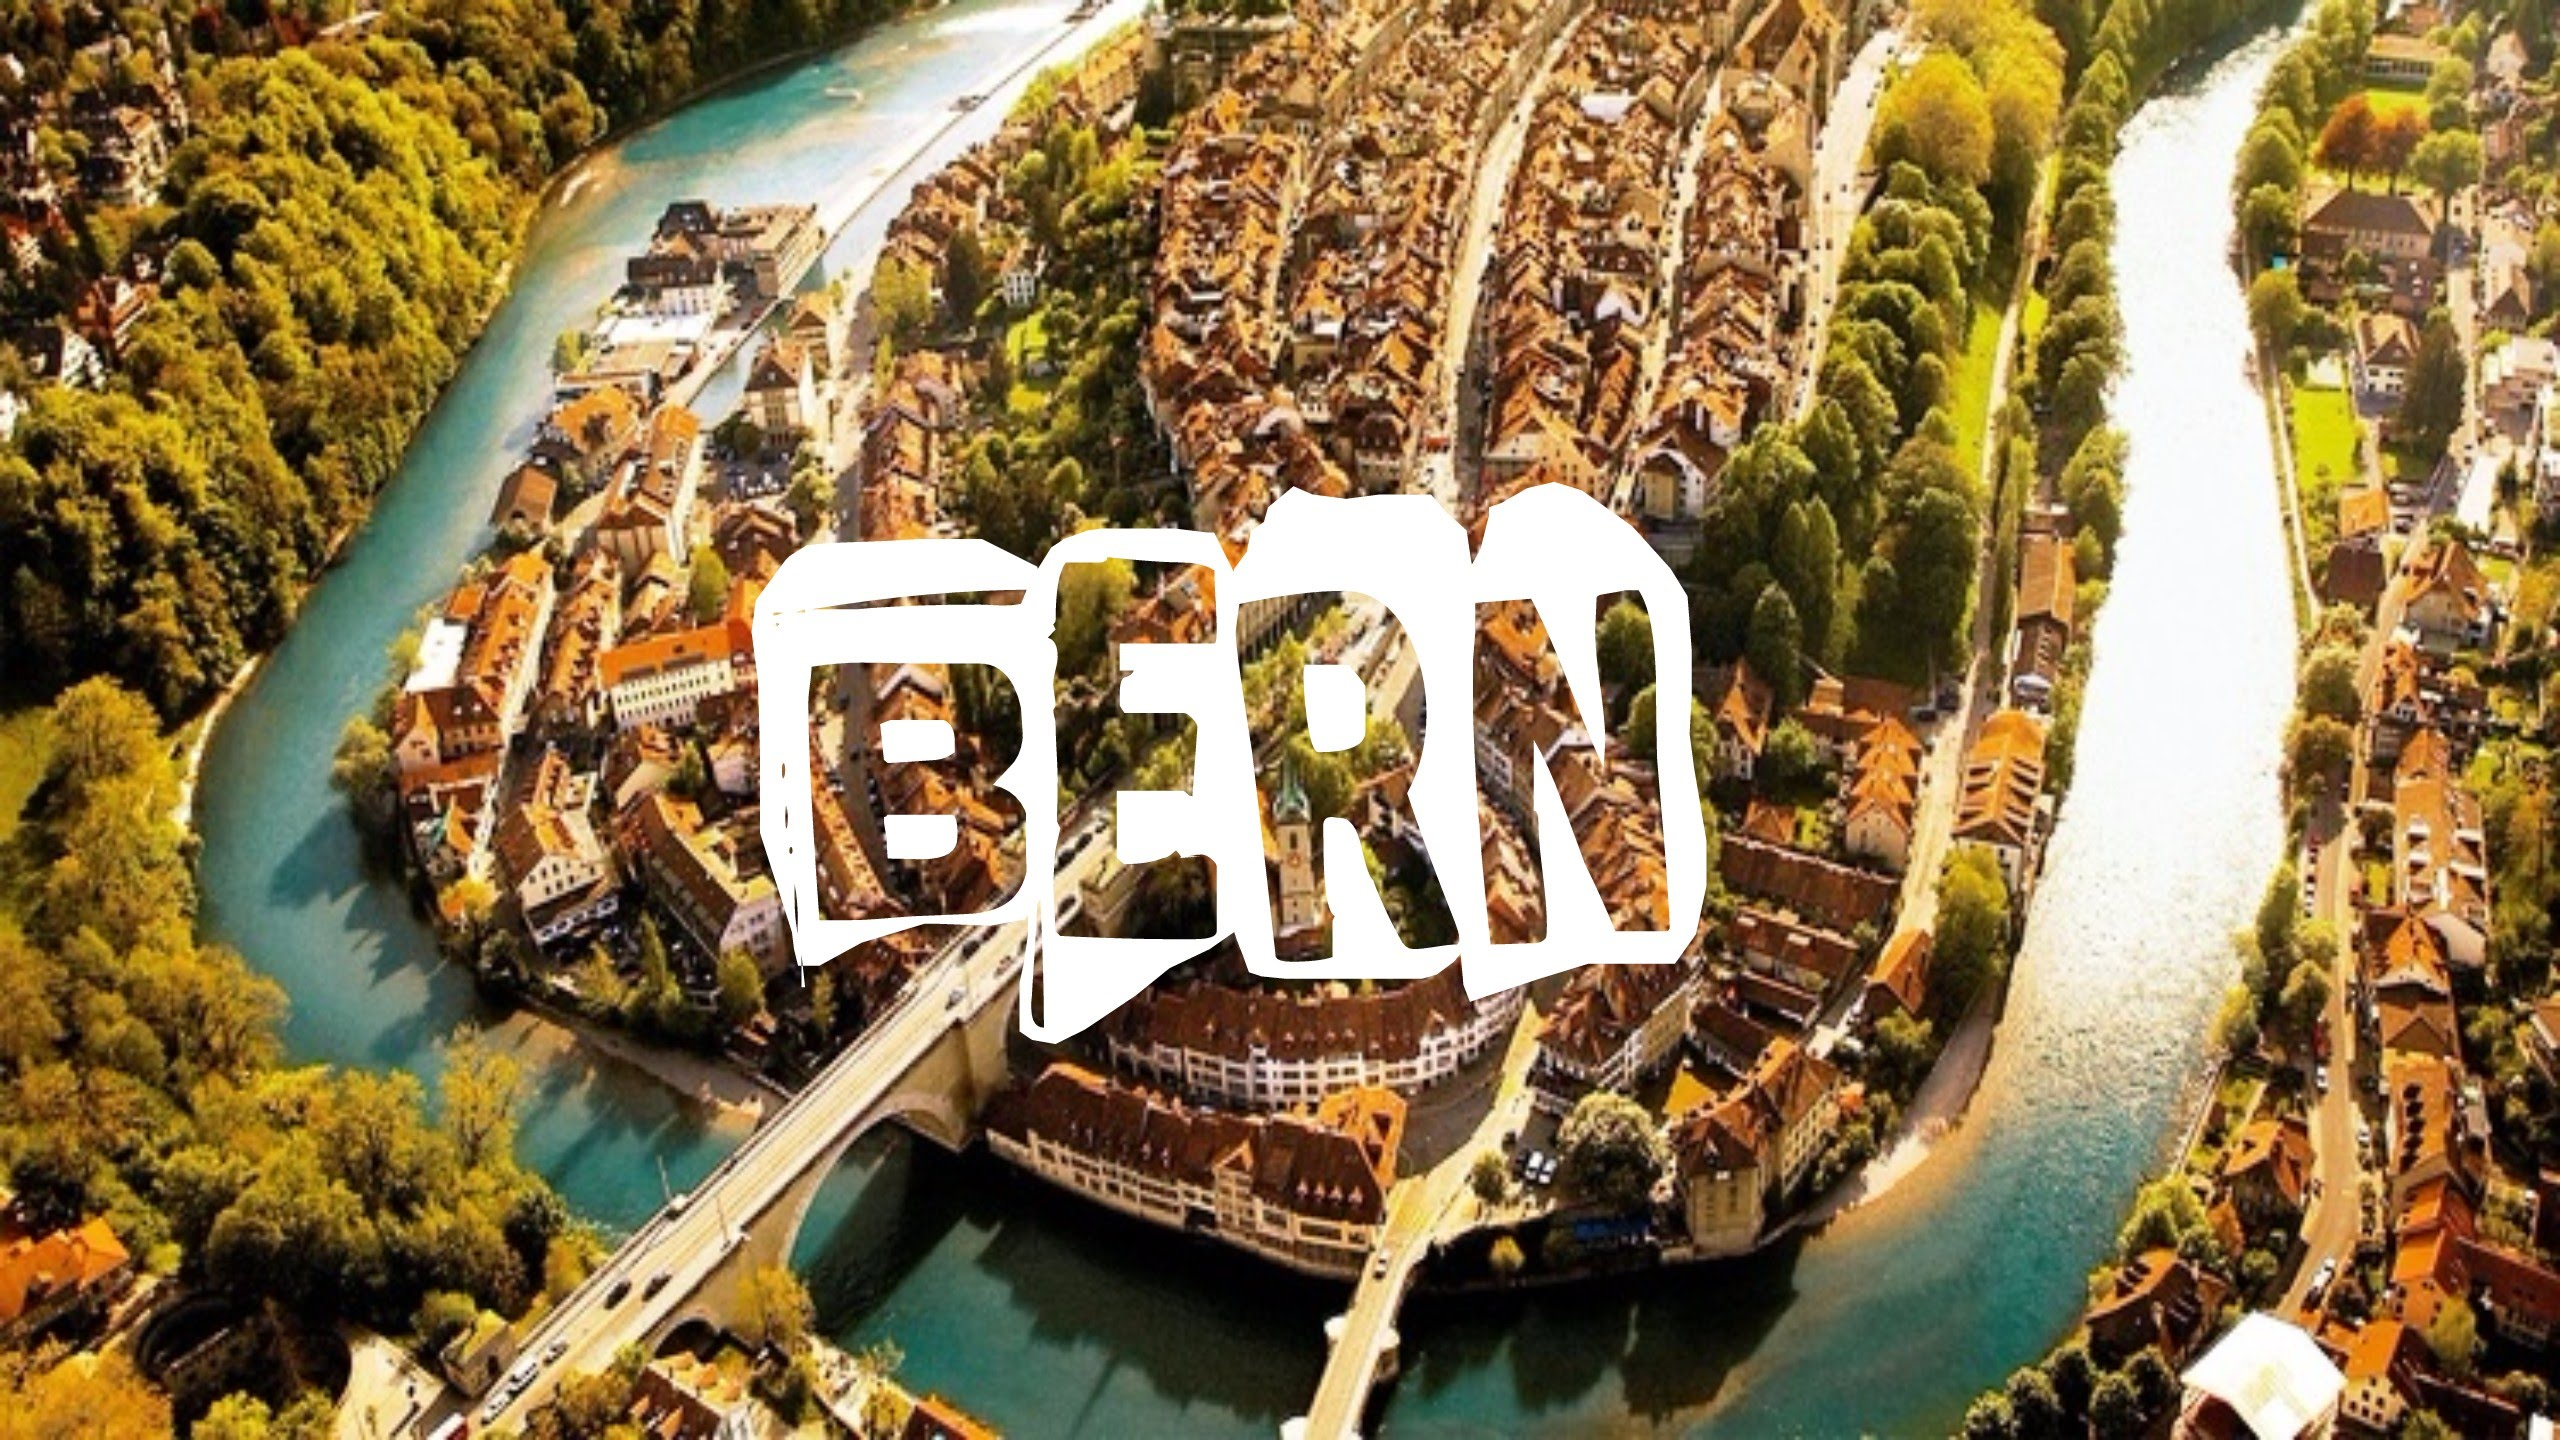 Top 10 things to do in Bern, Switzerland. Visit Bern